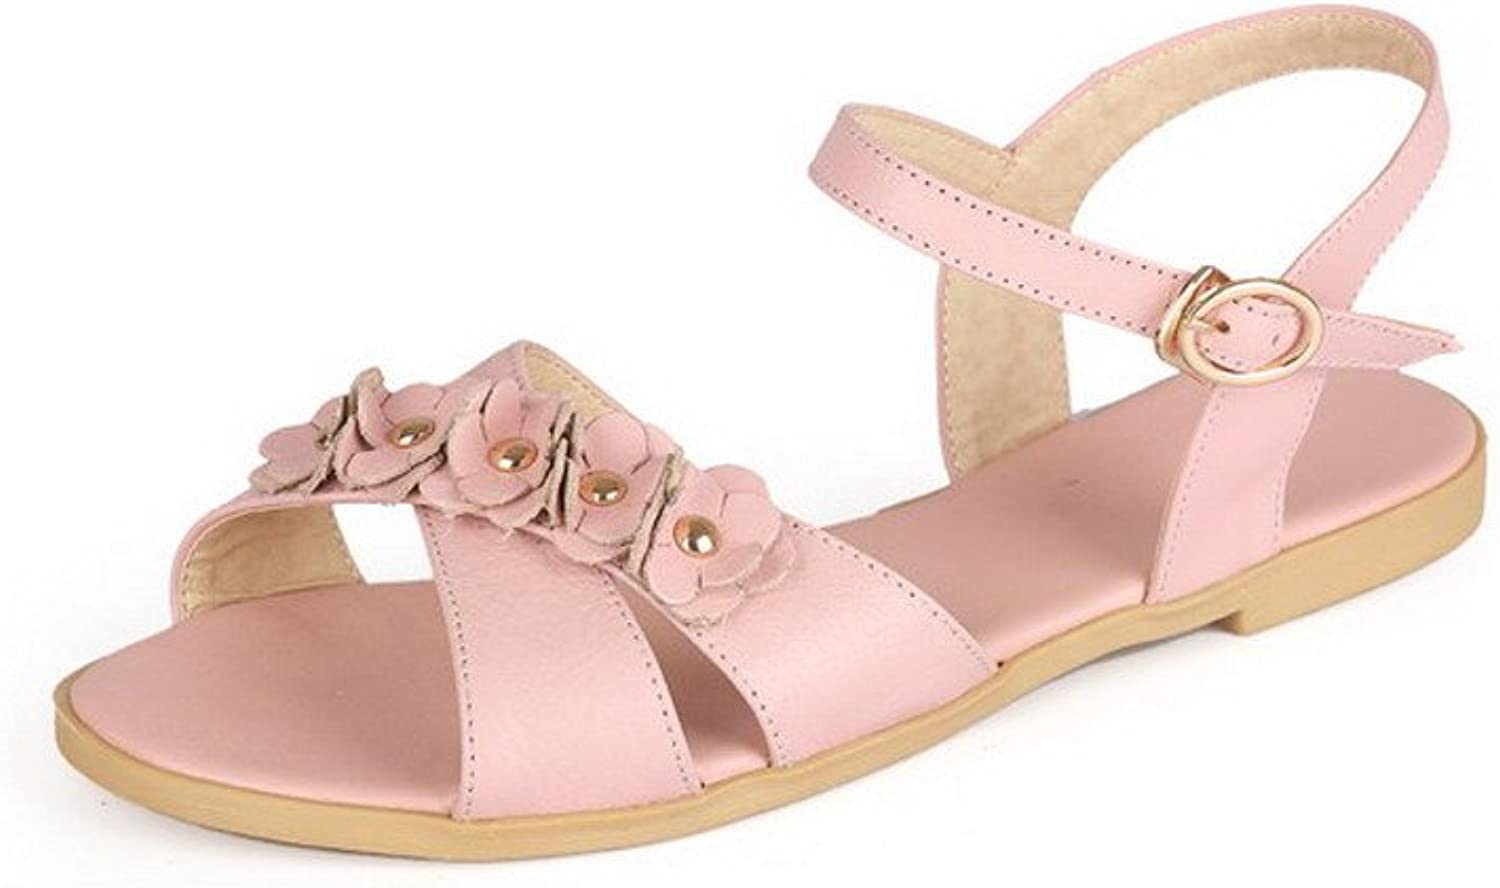 AmoonyFashion Women's Buckle Cow Leather Open Toe No Heel Solid Sandals